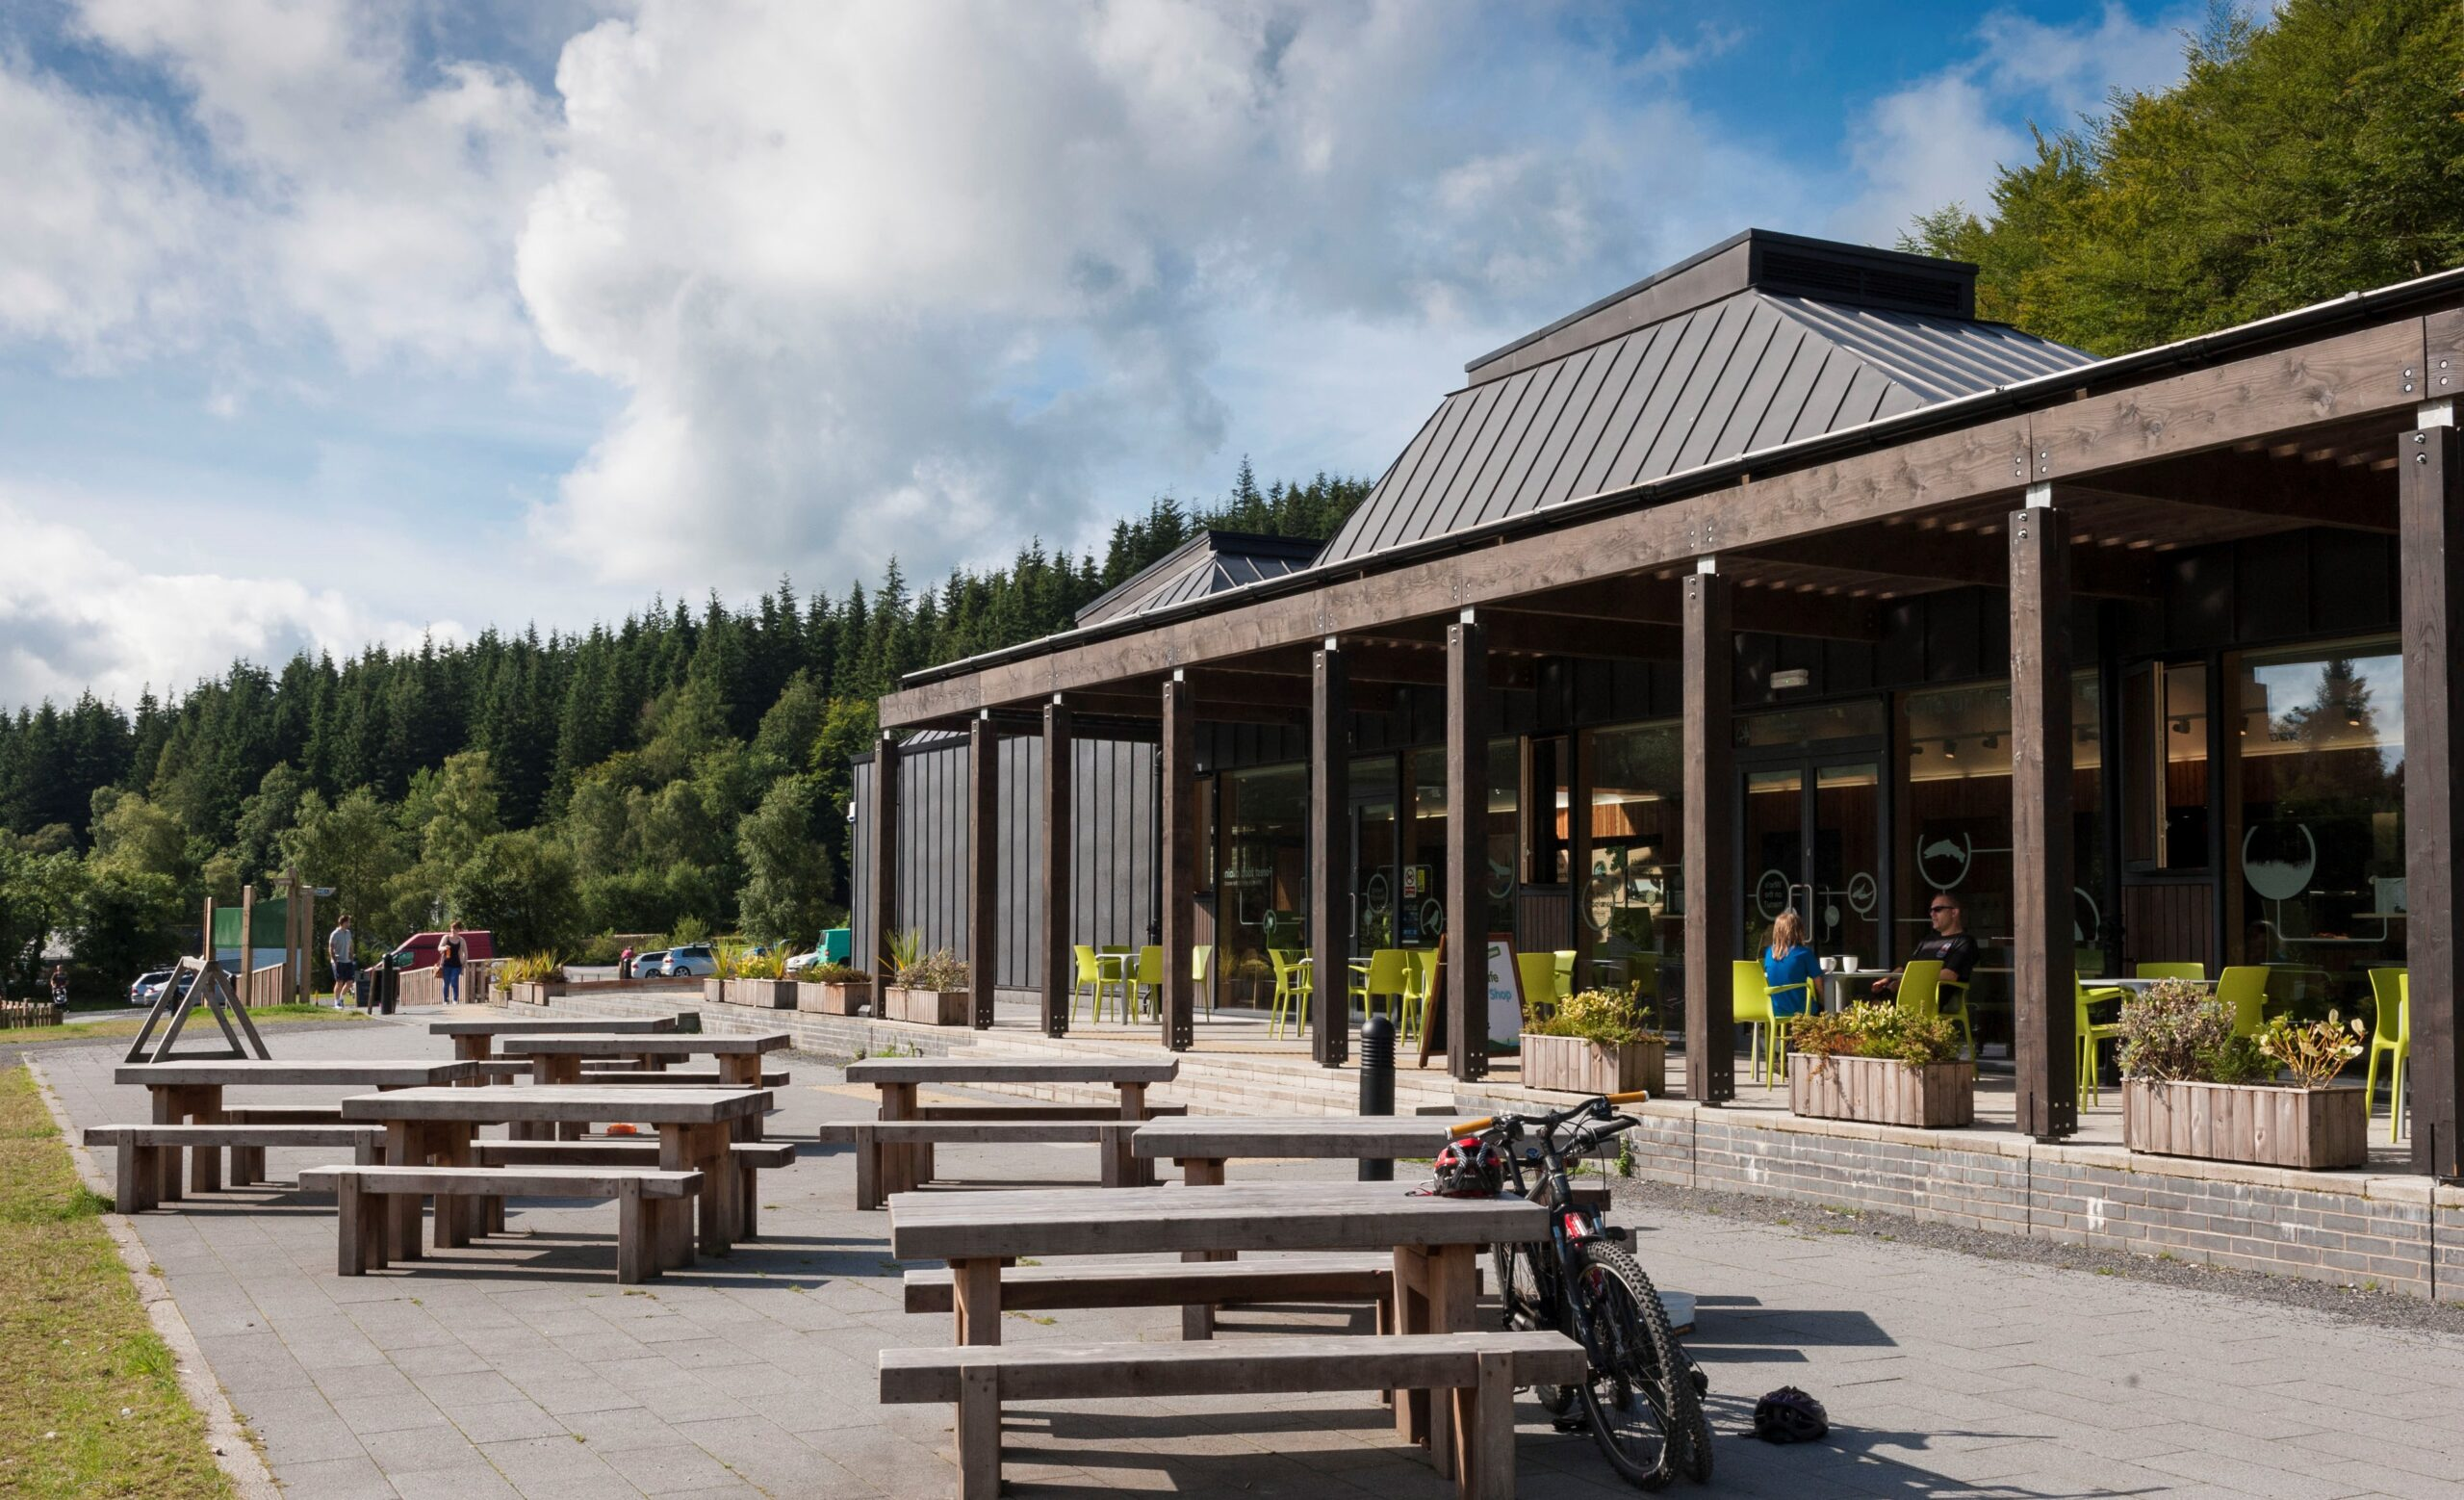 Image showing Kirroughtree Visitor Centre, Galloway Forest Park